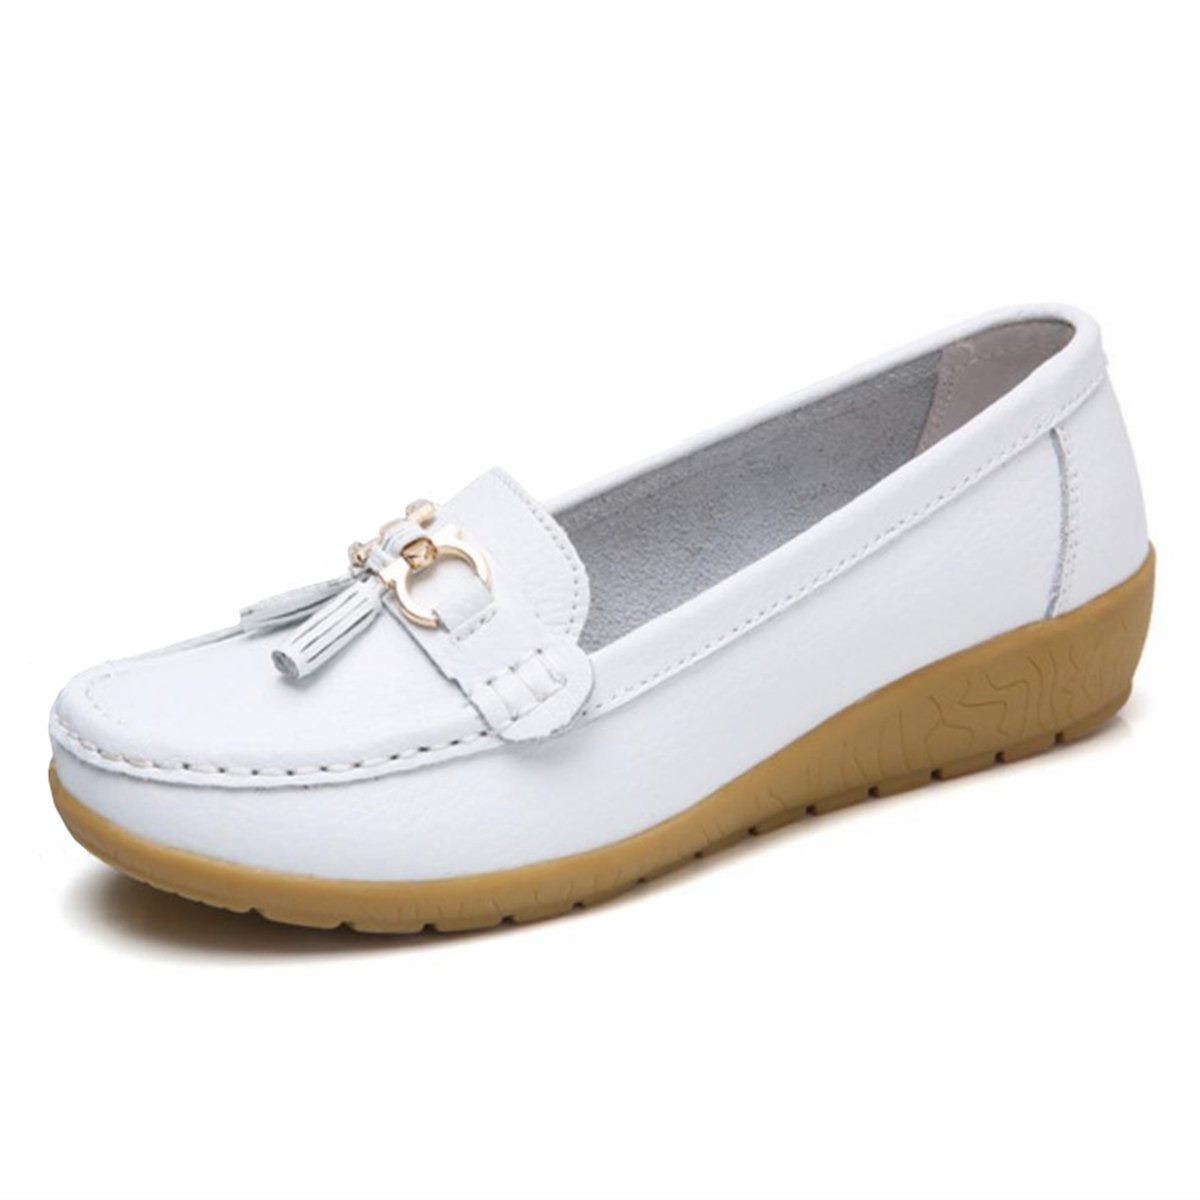 Women Loafers Leather Oxford Slip On Walking Flats Anti-Skid Boat Shoes (7.5 B (M) US, V-White)